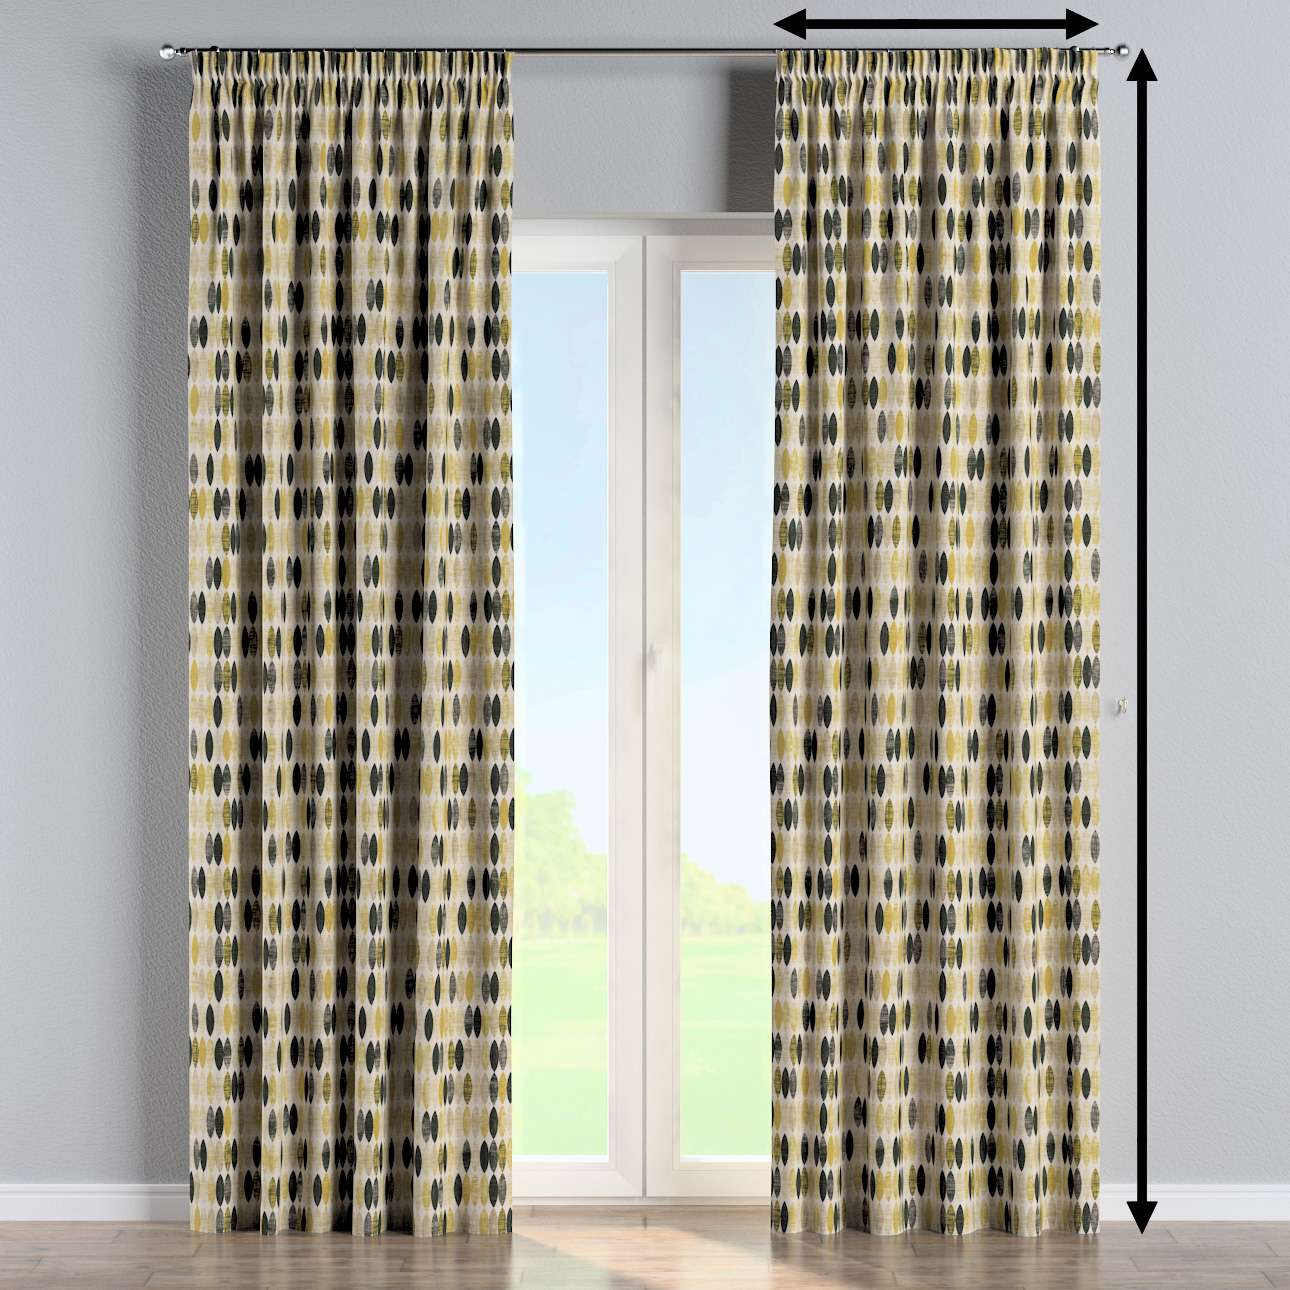 Pencil pleat curtains in collection Modern, fabric: 142-99